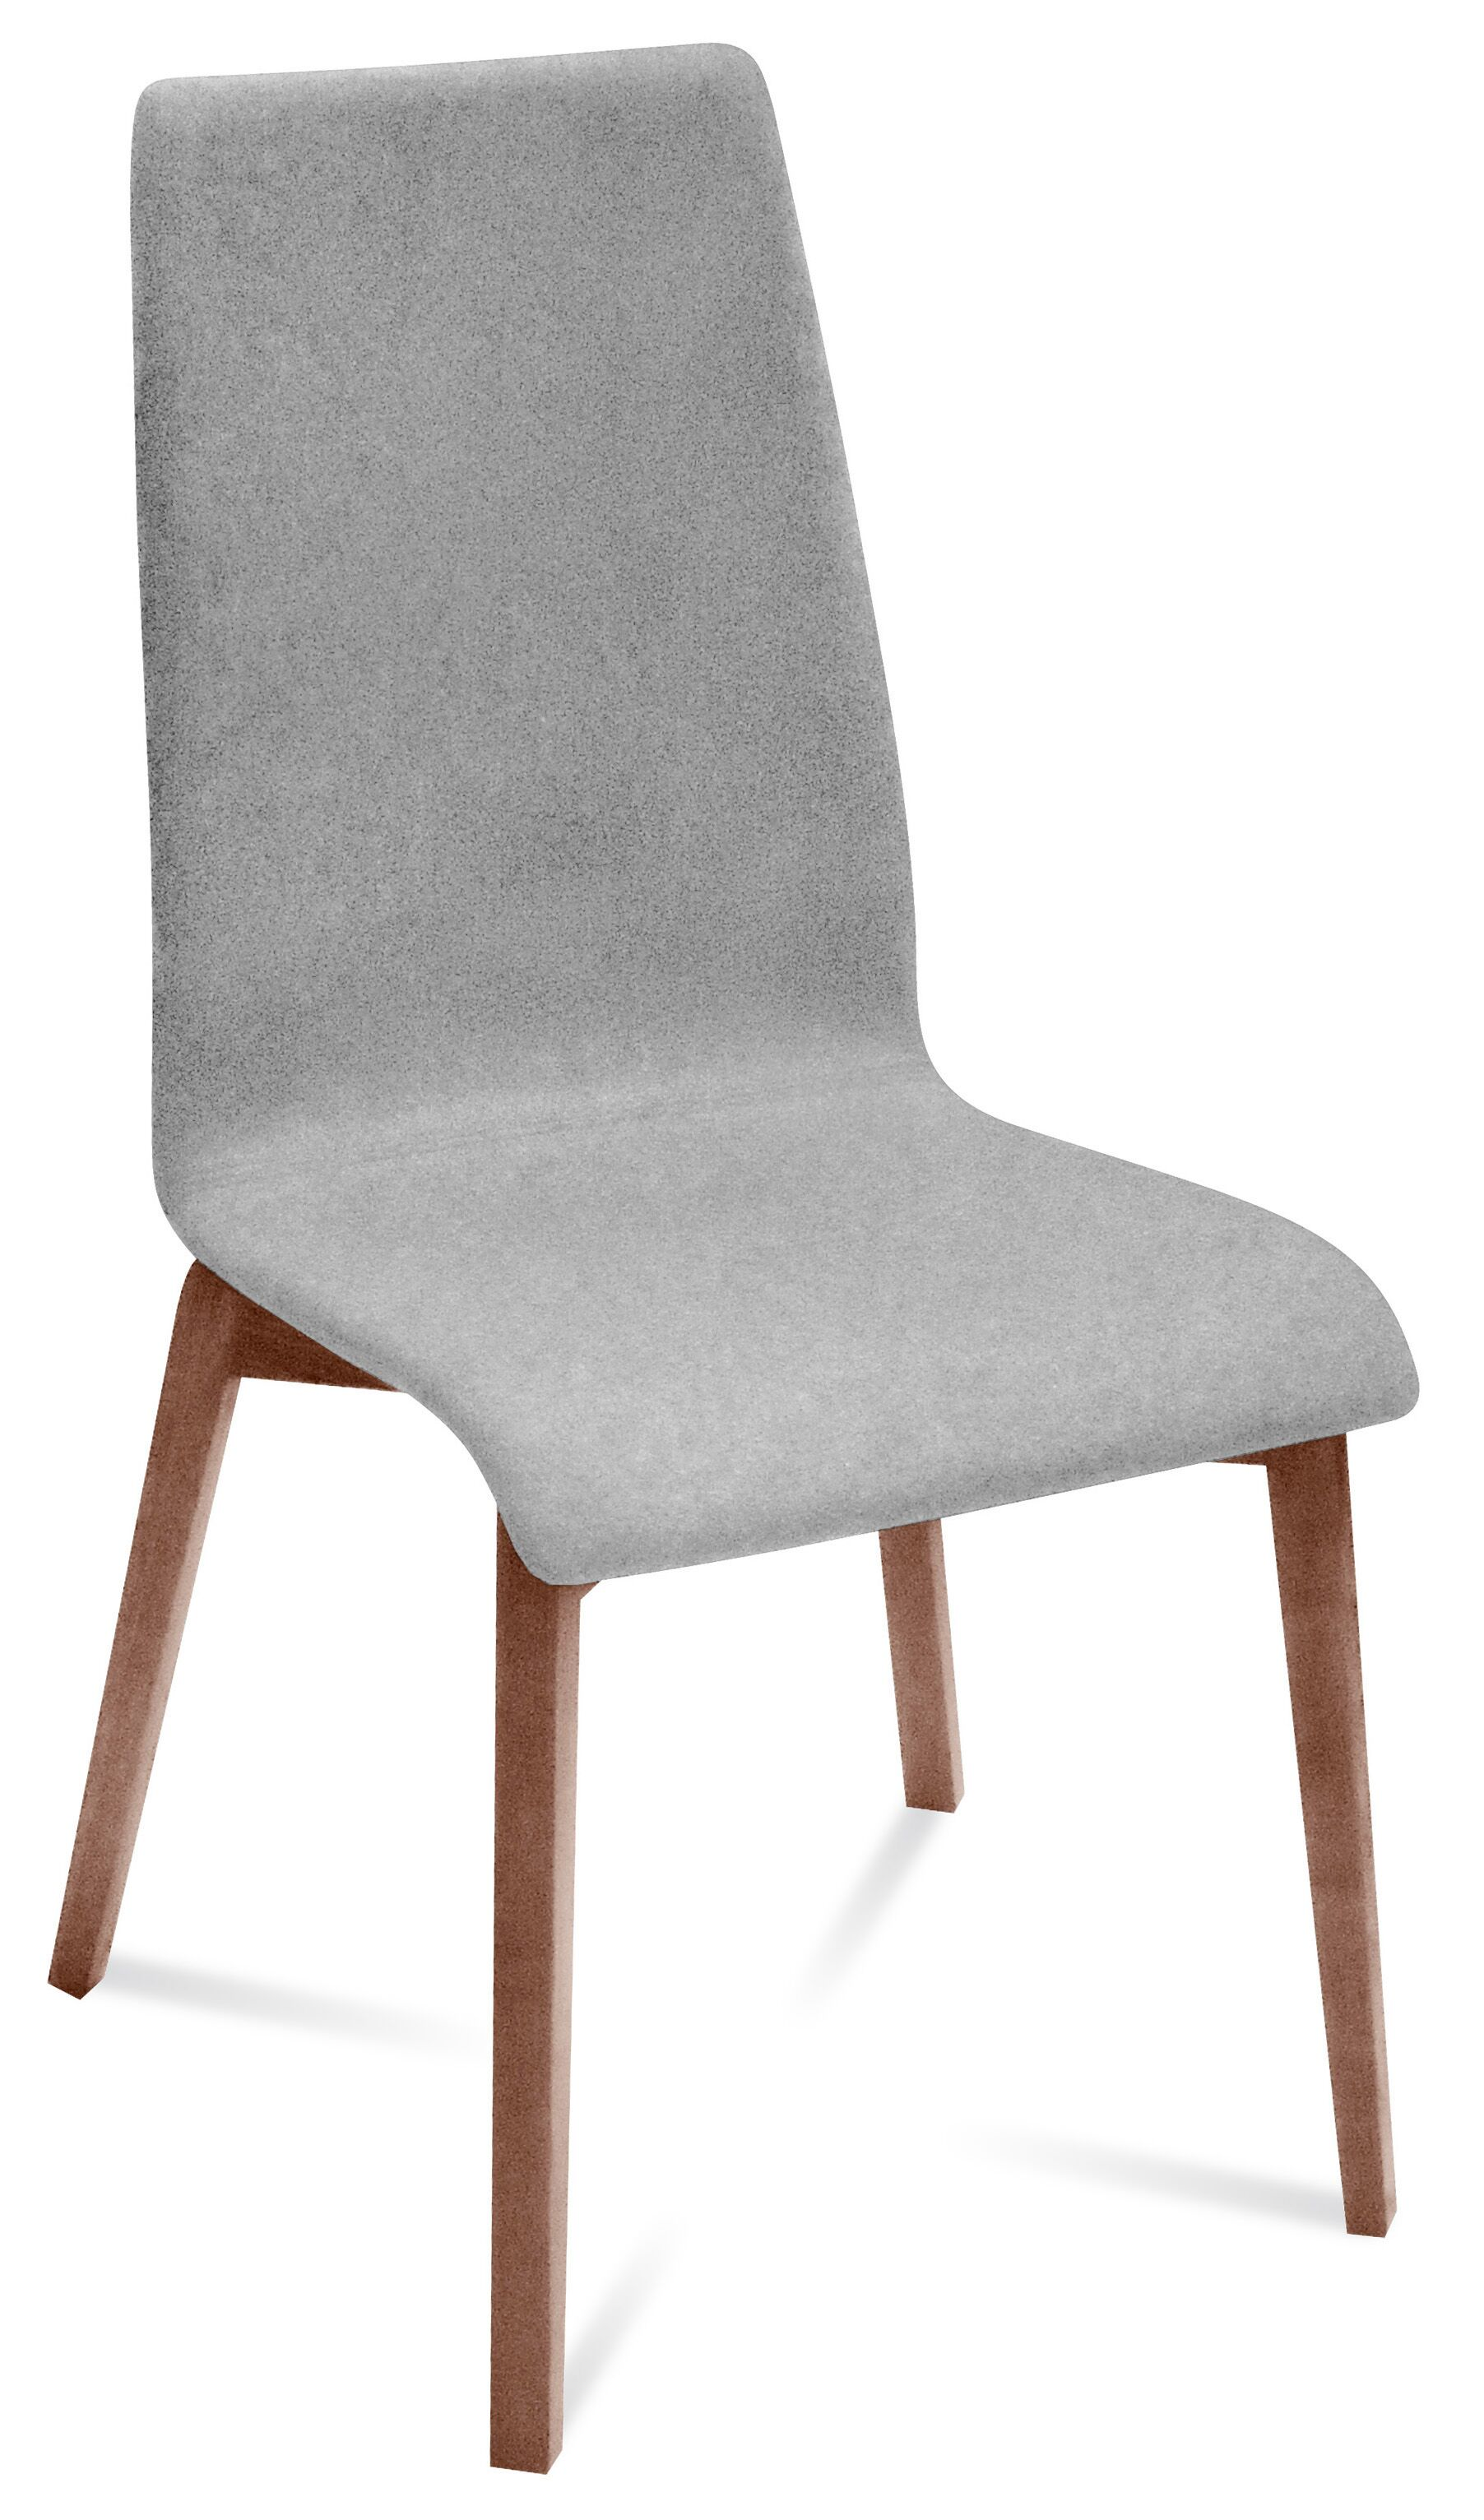 Jill-L Side Chair (Set of 2) Upholstery Color: Light Grey, Leg Color: Walnut